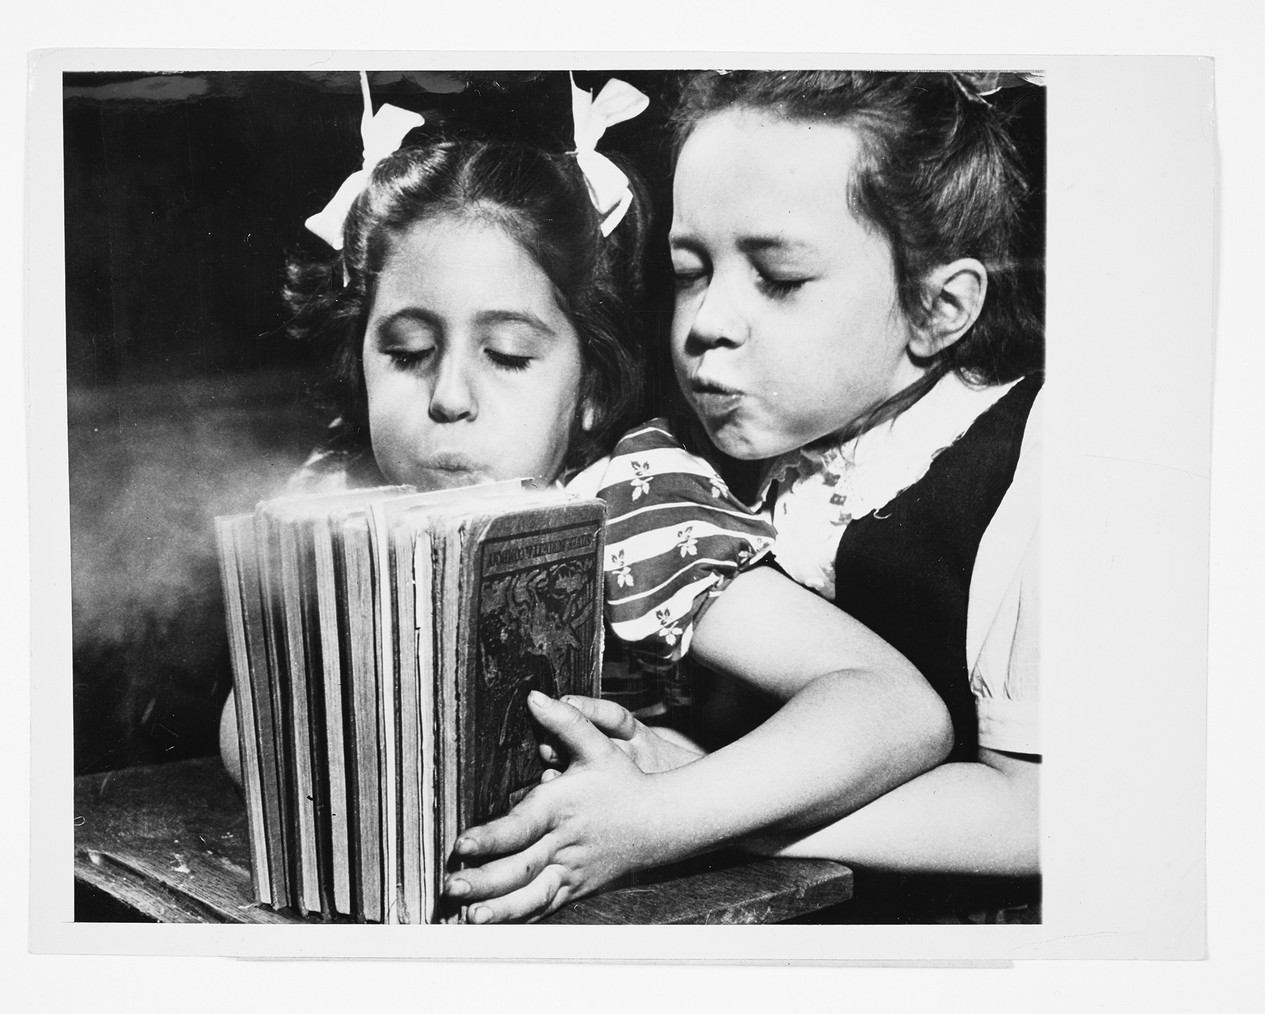 Photographer unknown, ACME Agency, School children blow 26 days of dust from their books as striking teachers return to work, 23 March 1948.